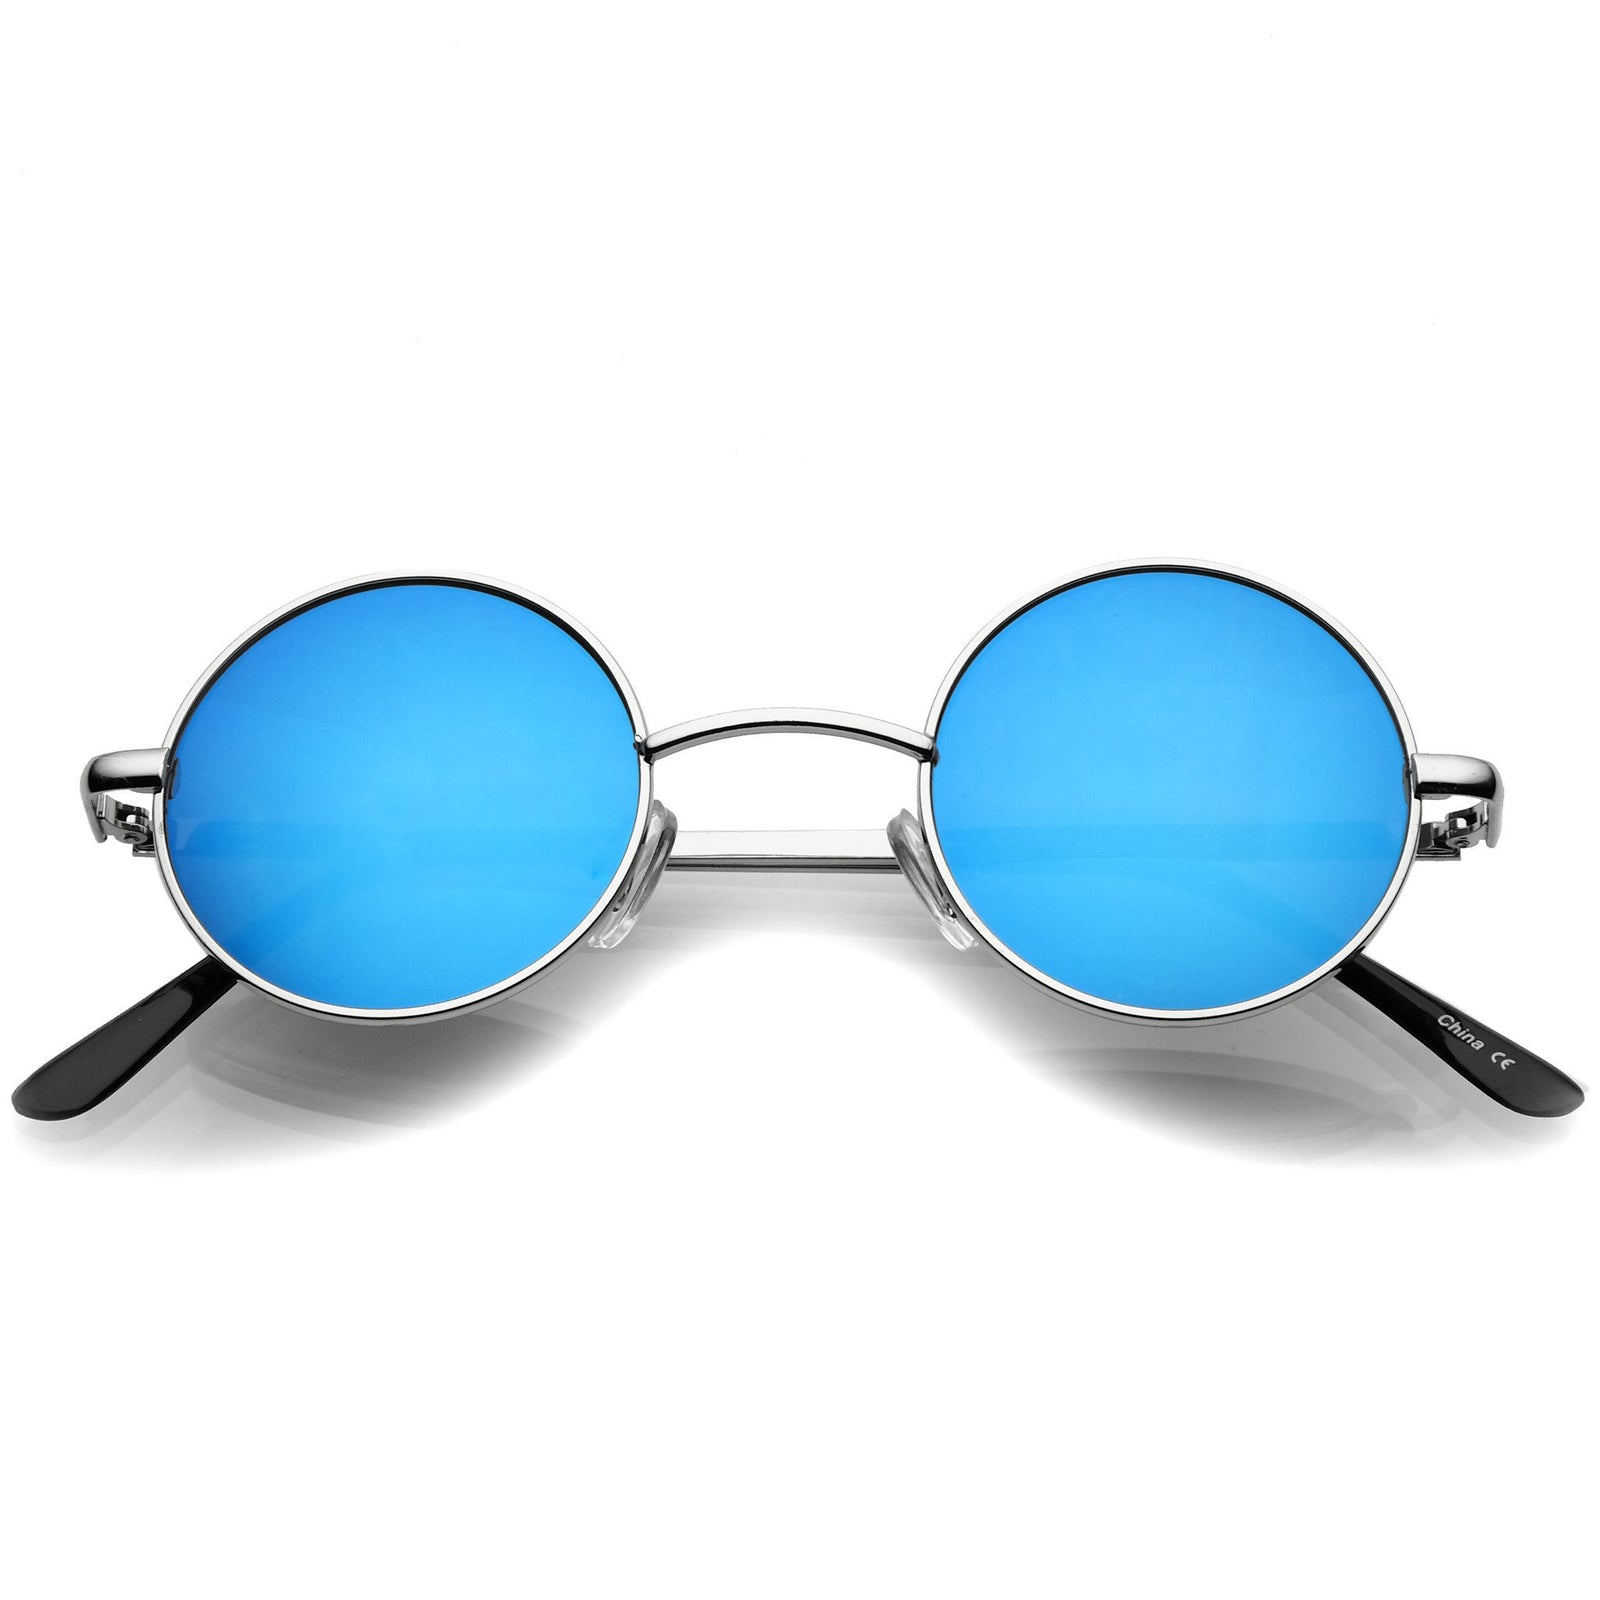 92f44067231e1 Retro Lennon Style Round Circle Metal Mirror Lens Sunglasses 1408